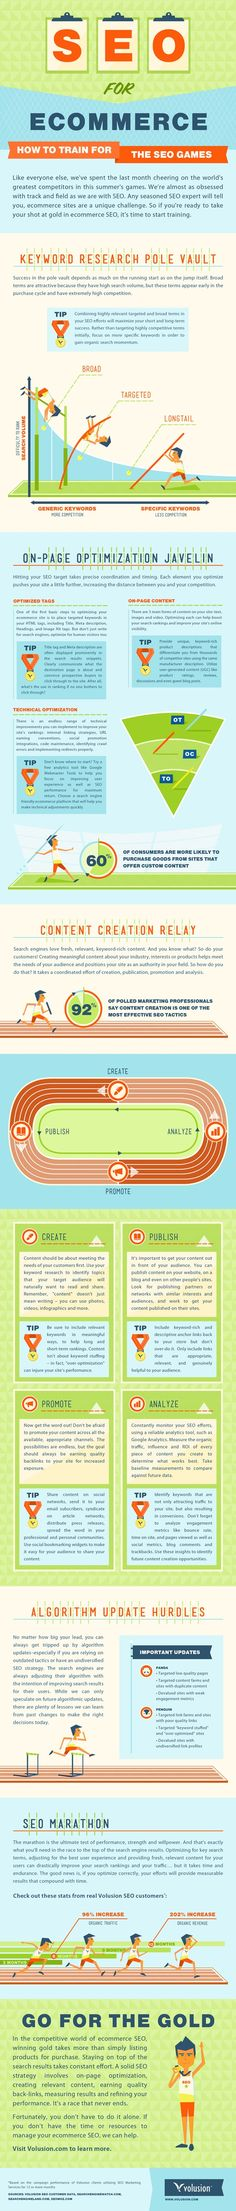 How Do You Train E-Commerce For The SEO Games? #infographic